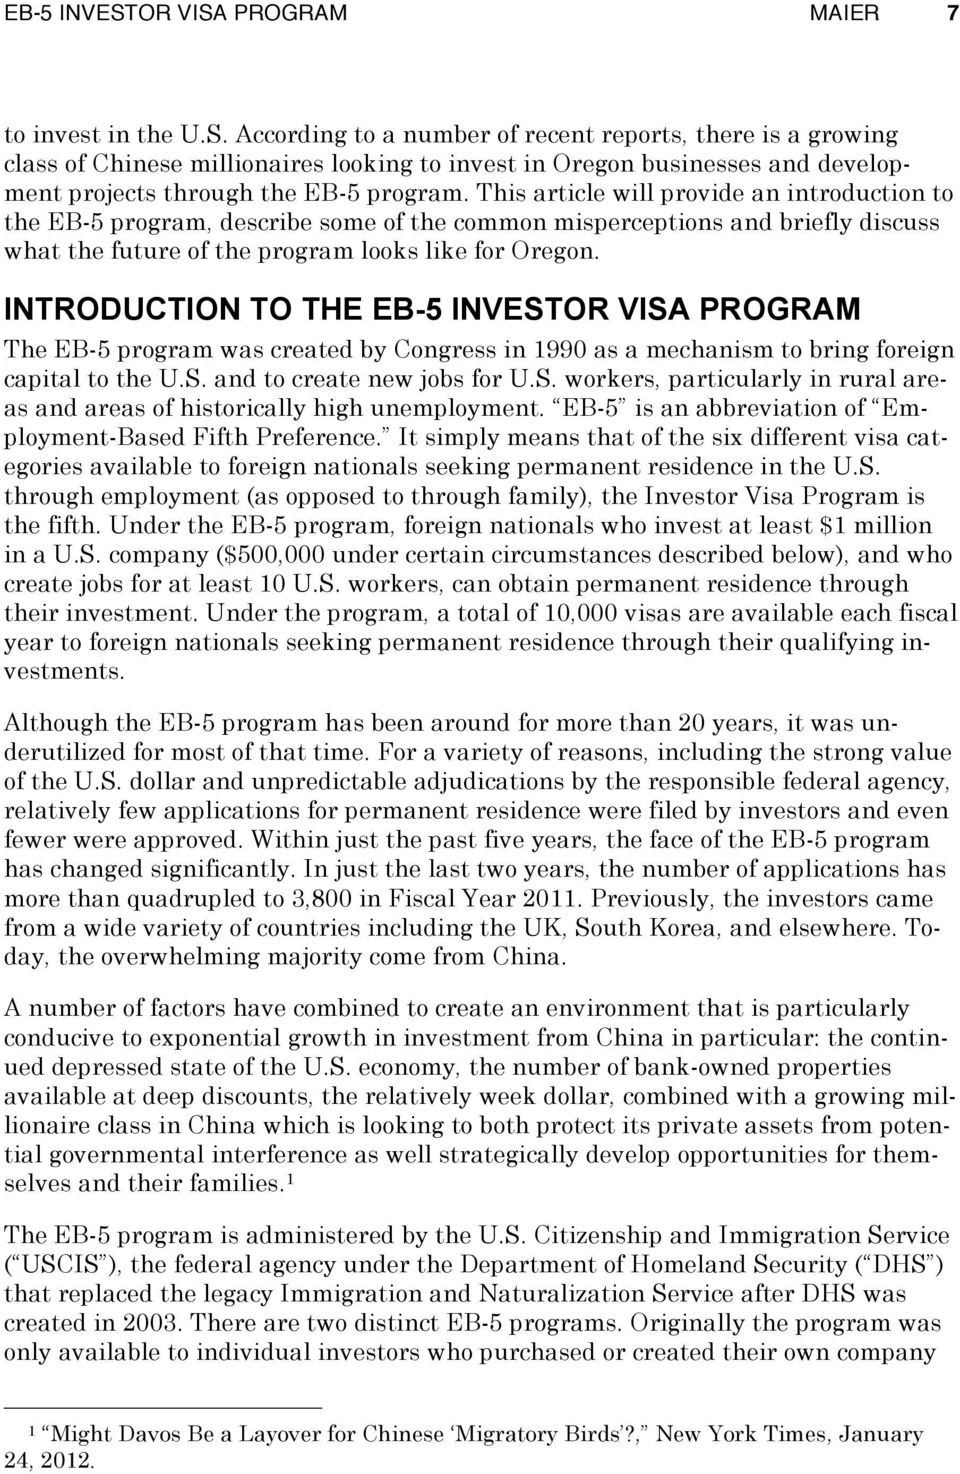 INTRODUCTION TO THE EB-5 INVESTOR VISA PROGRAM The EB-5 program was created by Congress in 1990 as a mechanism to bring foreign capital to the U.S. and to create new jobs for U.S. workers, particularly in rural areas and areas of historically high unemployment.